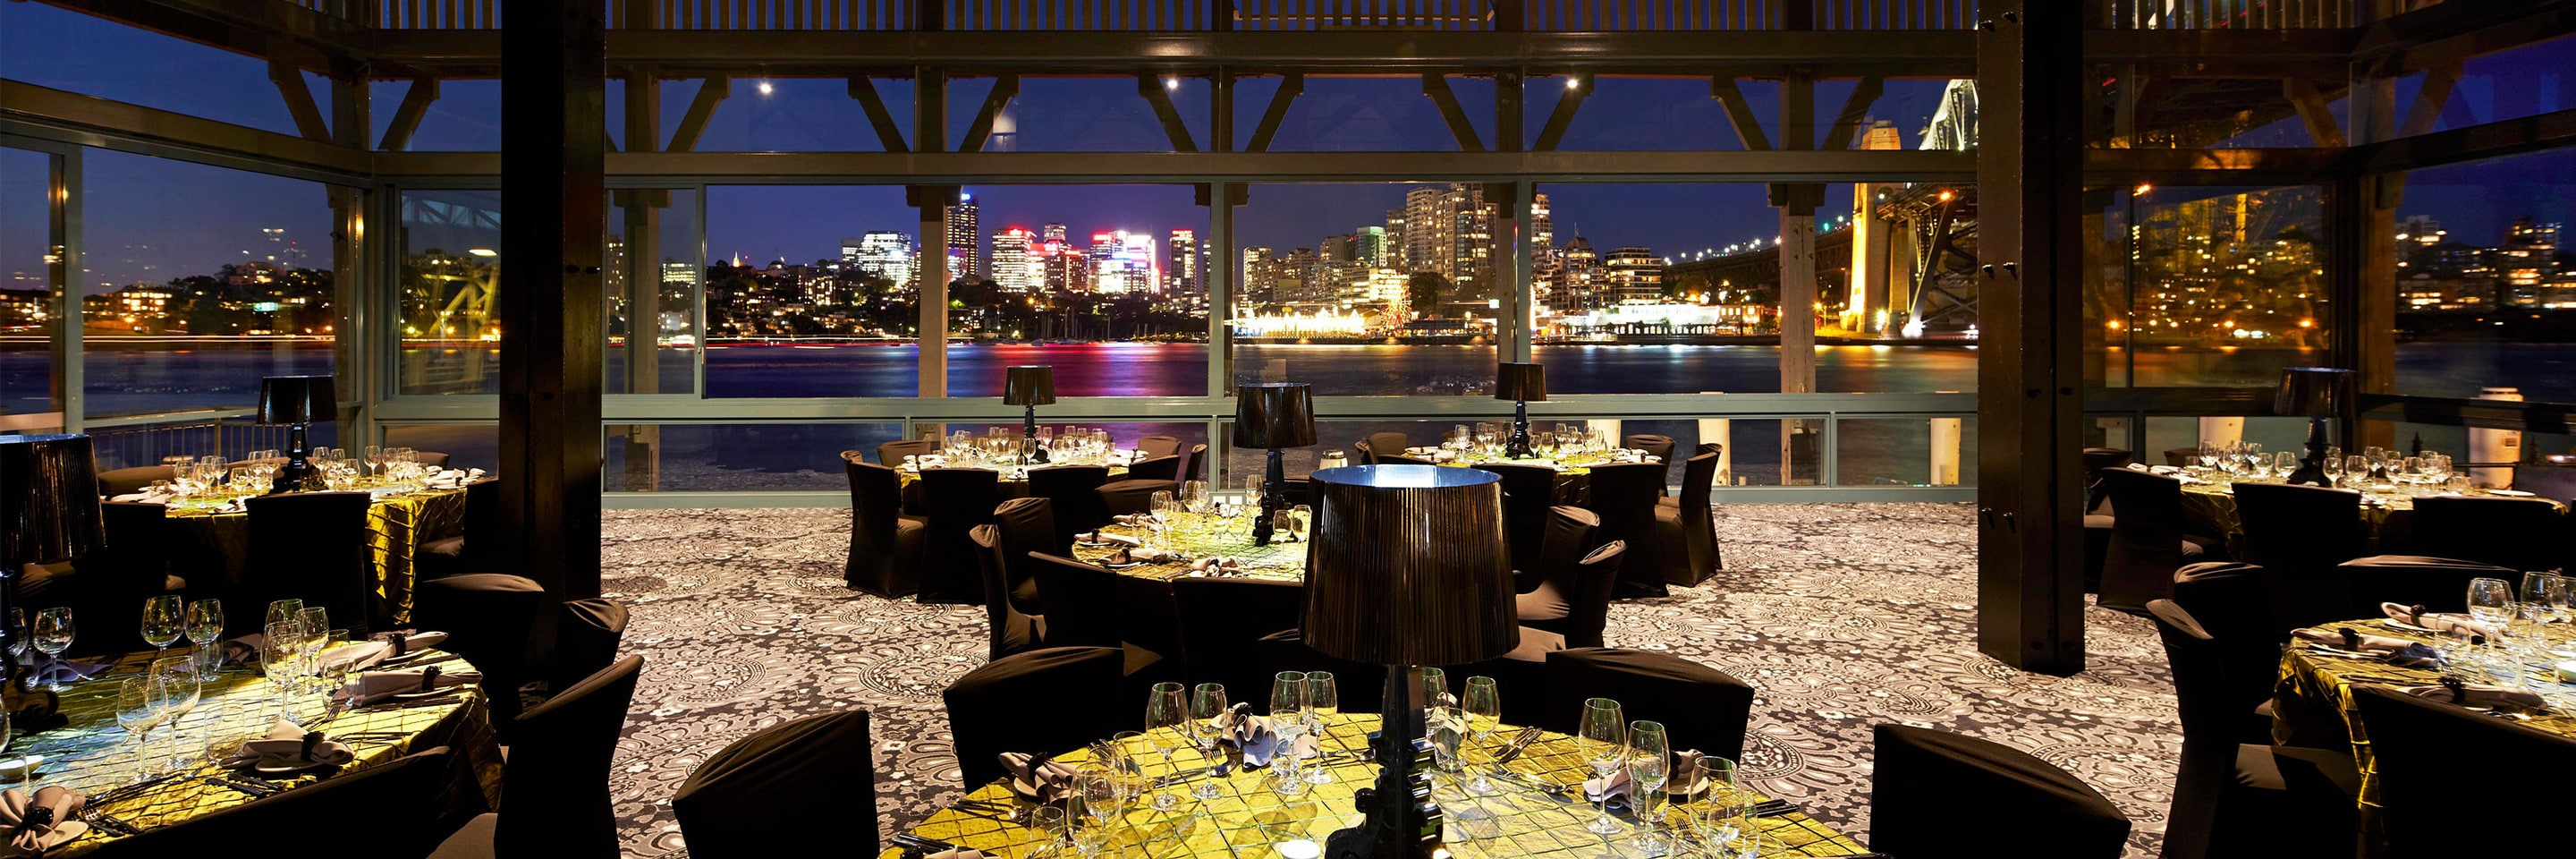 Outdoor dining at night overlooking river and cityscape